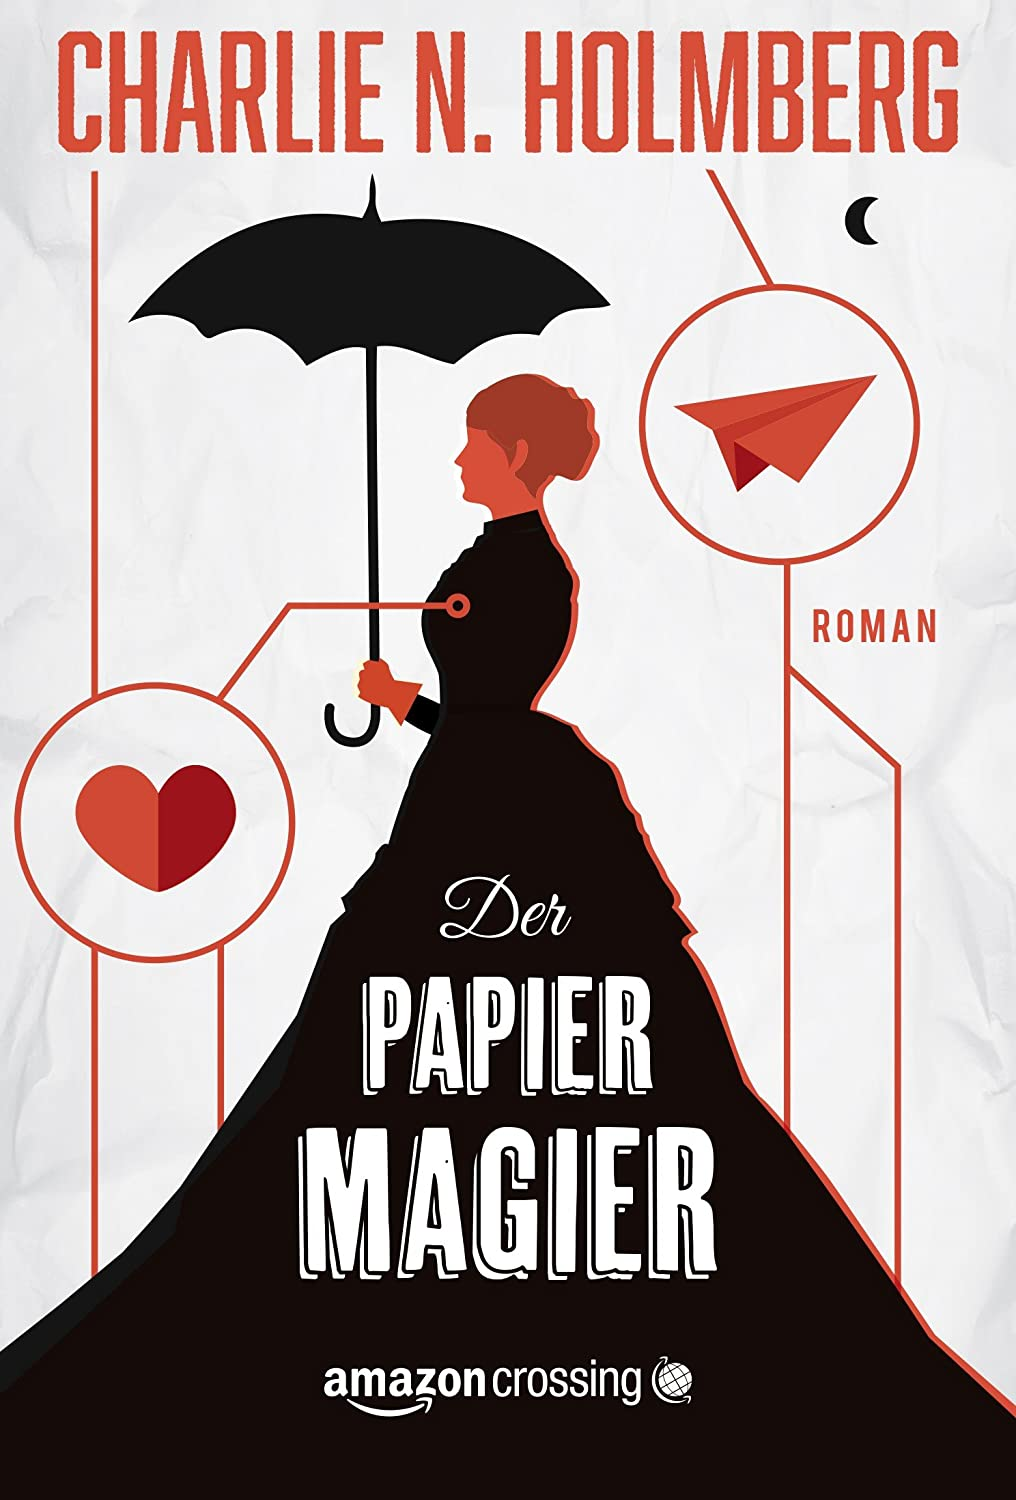 https://www.amazon.de/Papiermagier-Die-Papiermagier-Serie-1-ebook/dp/B00V73915Y/ref=tmm_kin_swatch_0?_encoding=UTF8&qid=&sr=